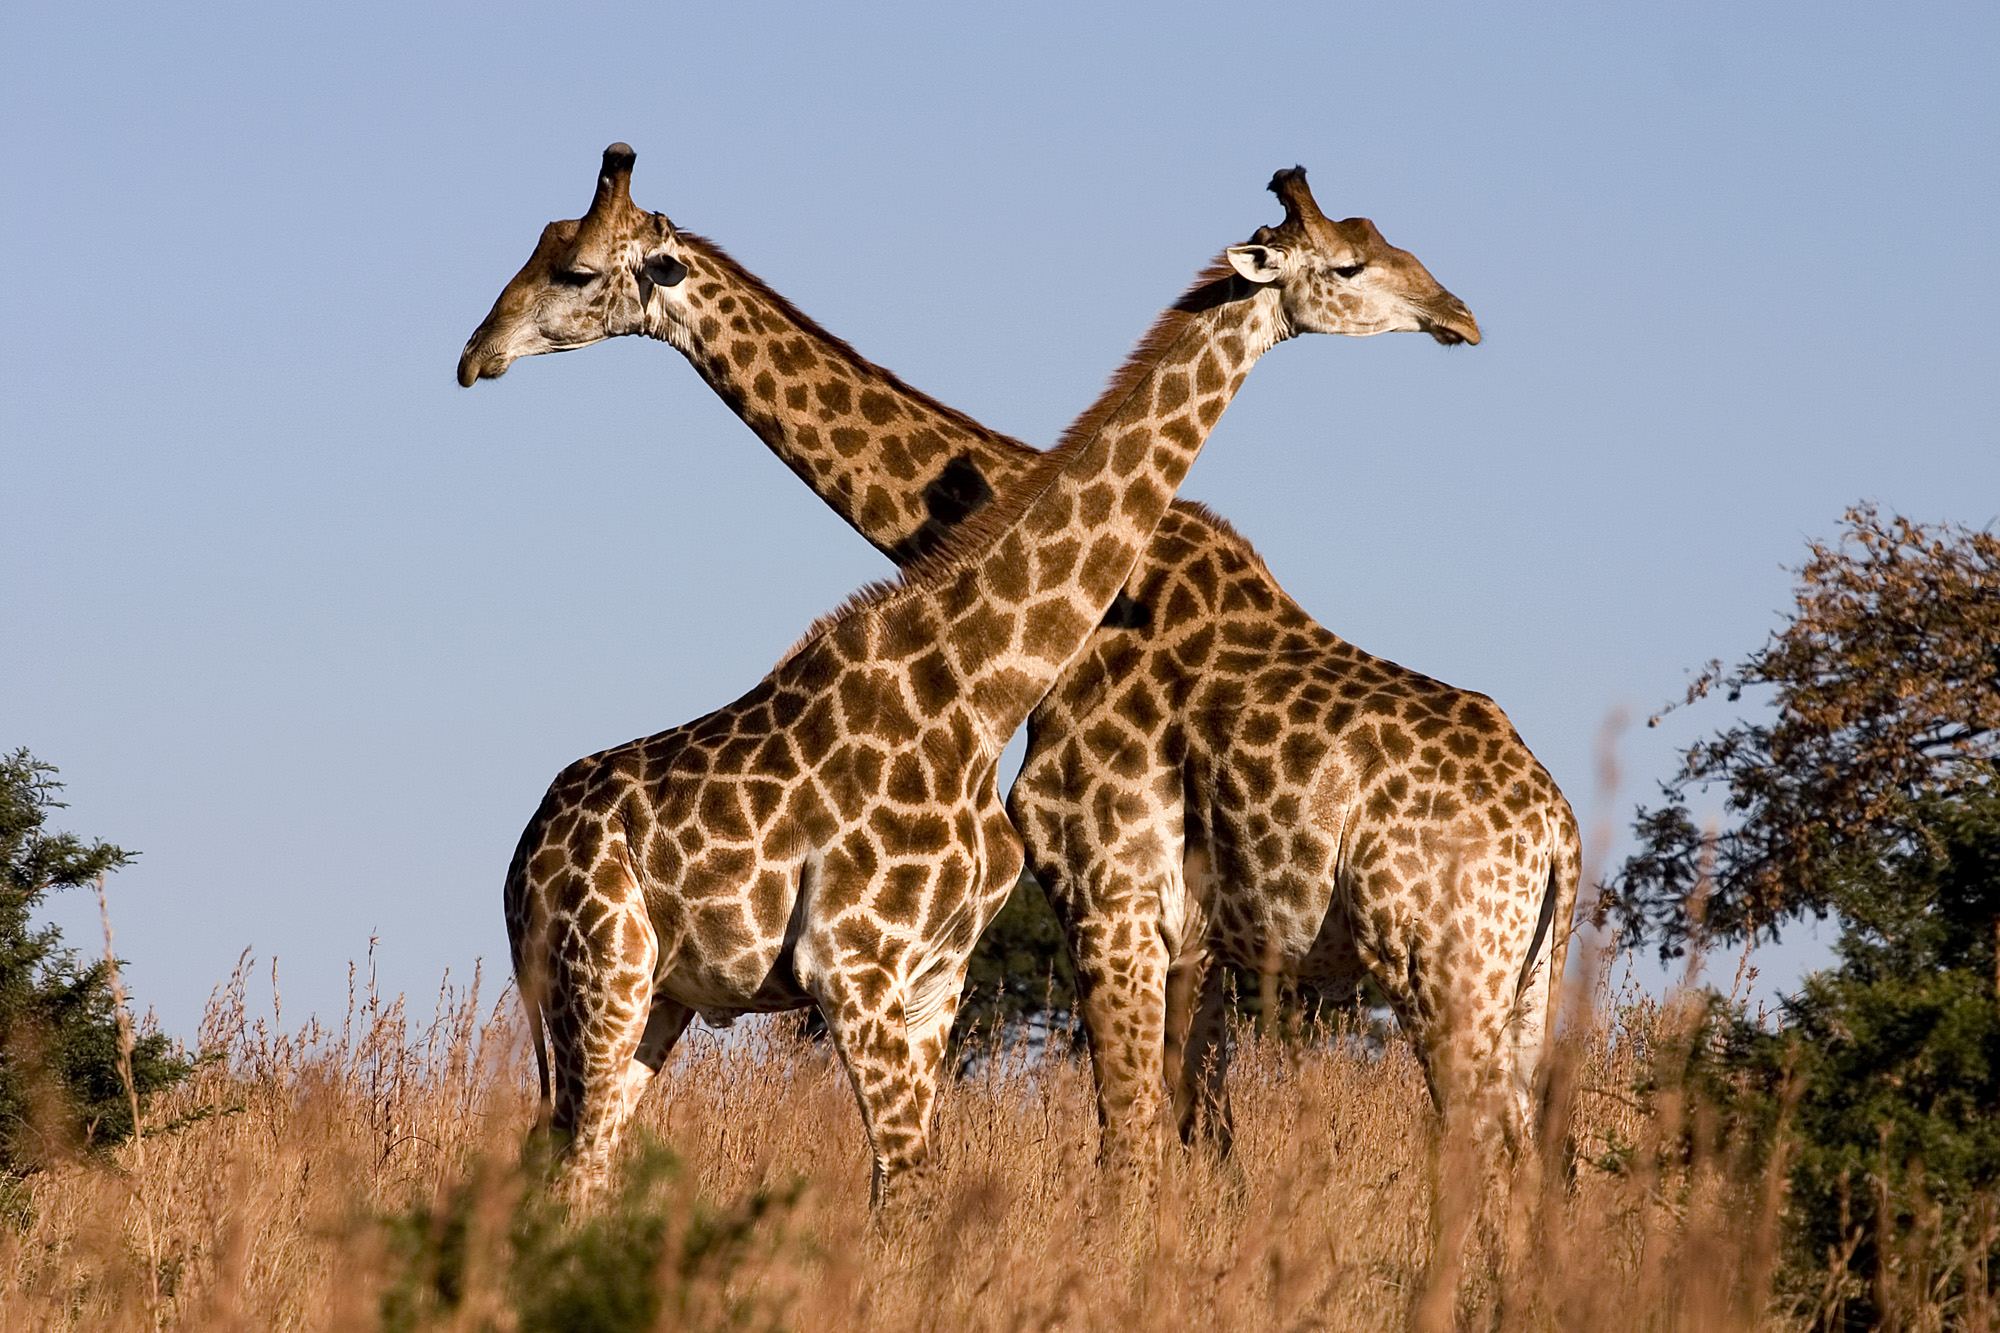 Male giraffes will engage in necking to establish dominance.